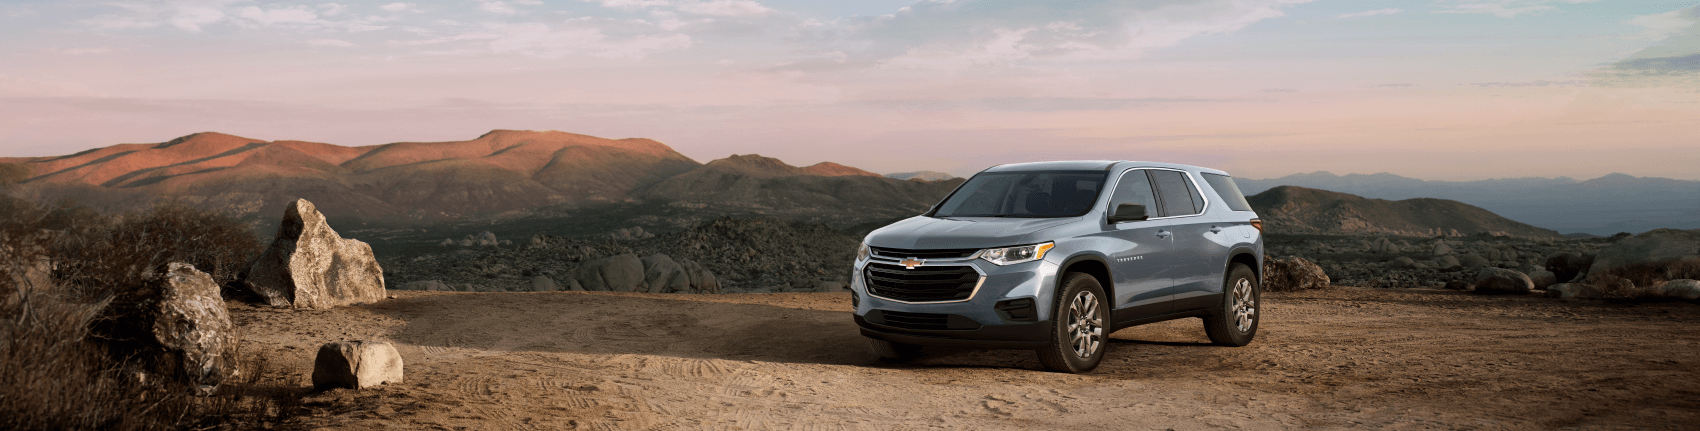 2021 Chevy Traverse Steel Mountain Desert